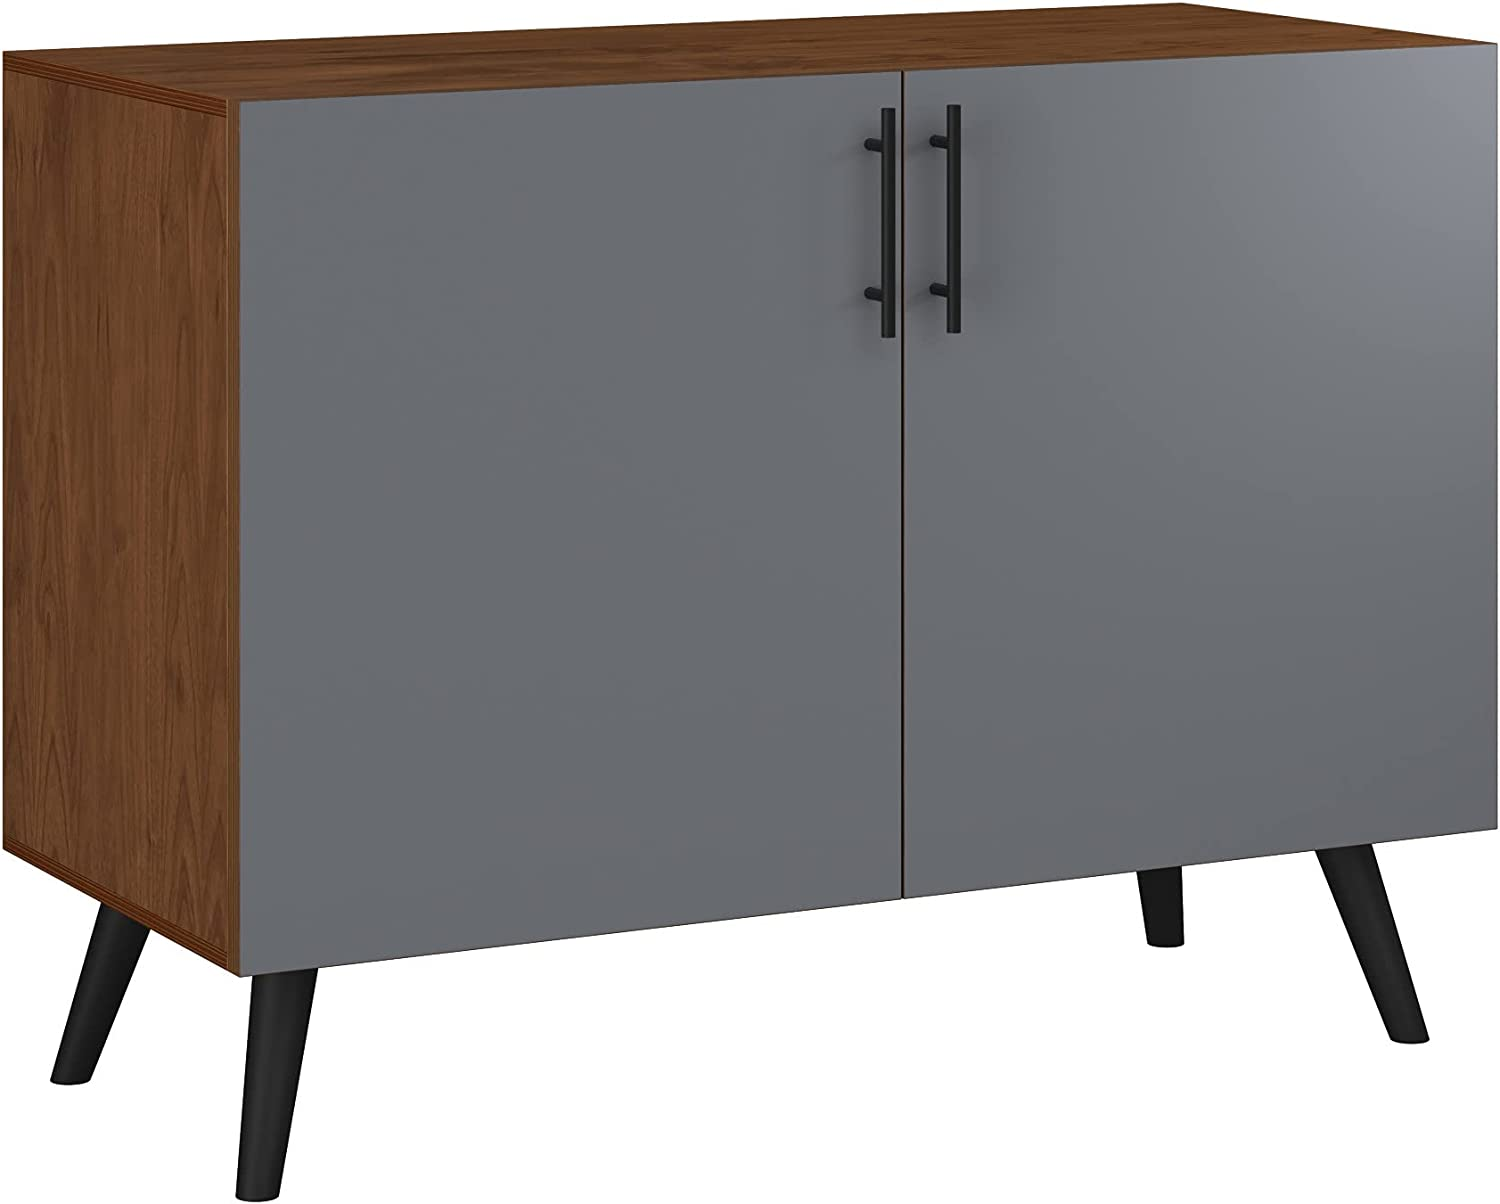 Poppy Credenza - Max 67% OFF Walnut Sadie Design in Colors Base 5 Style Some reservation 11